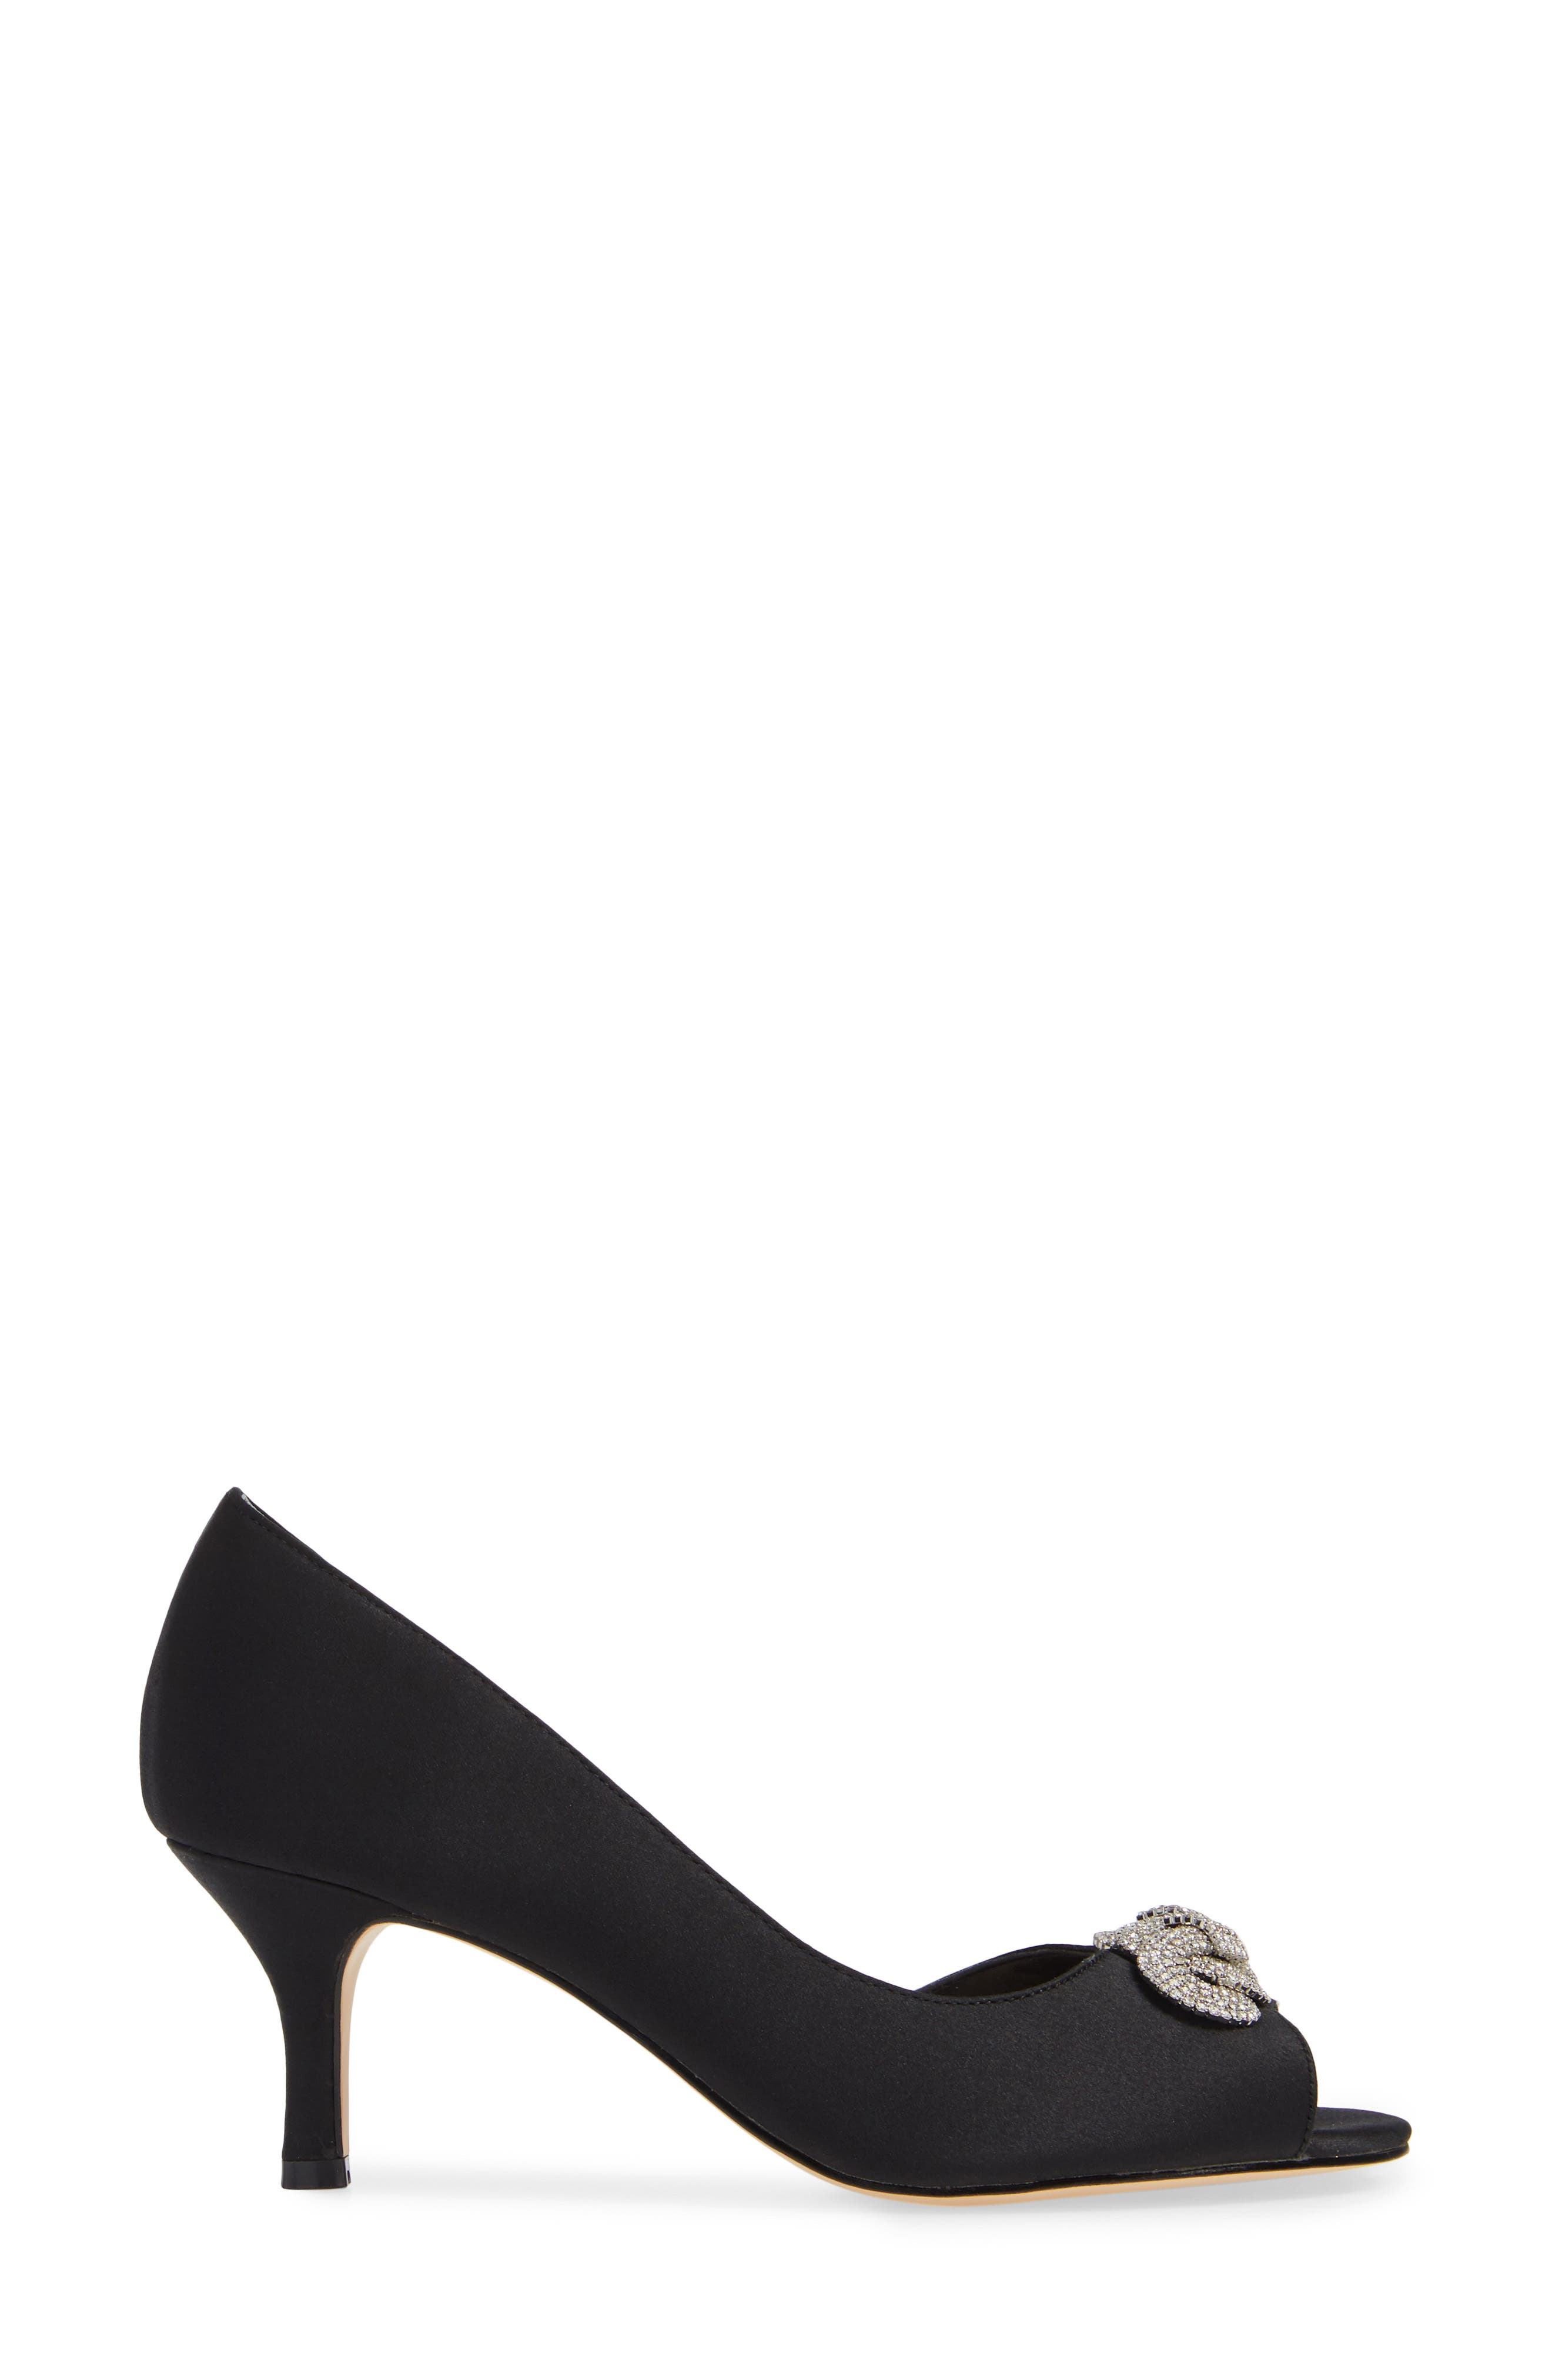 Madolyn Embellished Open Toe Pump,                             Alternate thumbnail 3, color,                             BLACK SATIN